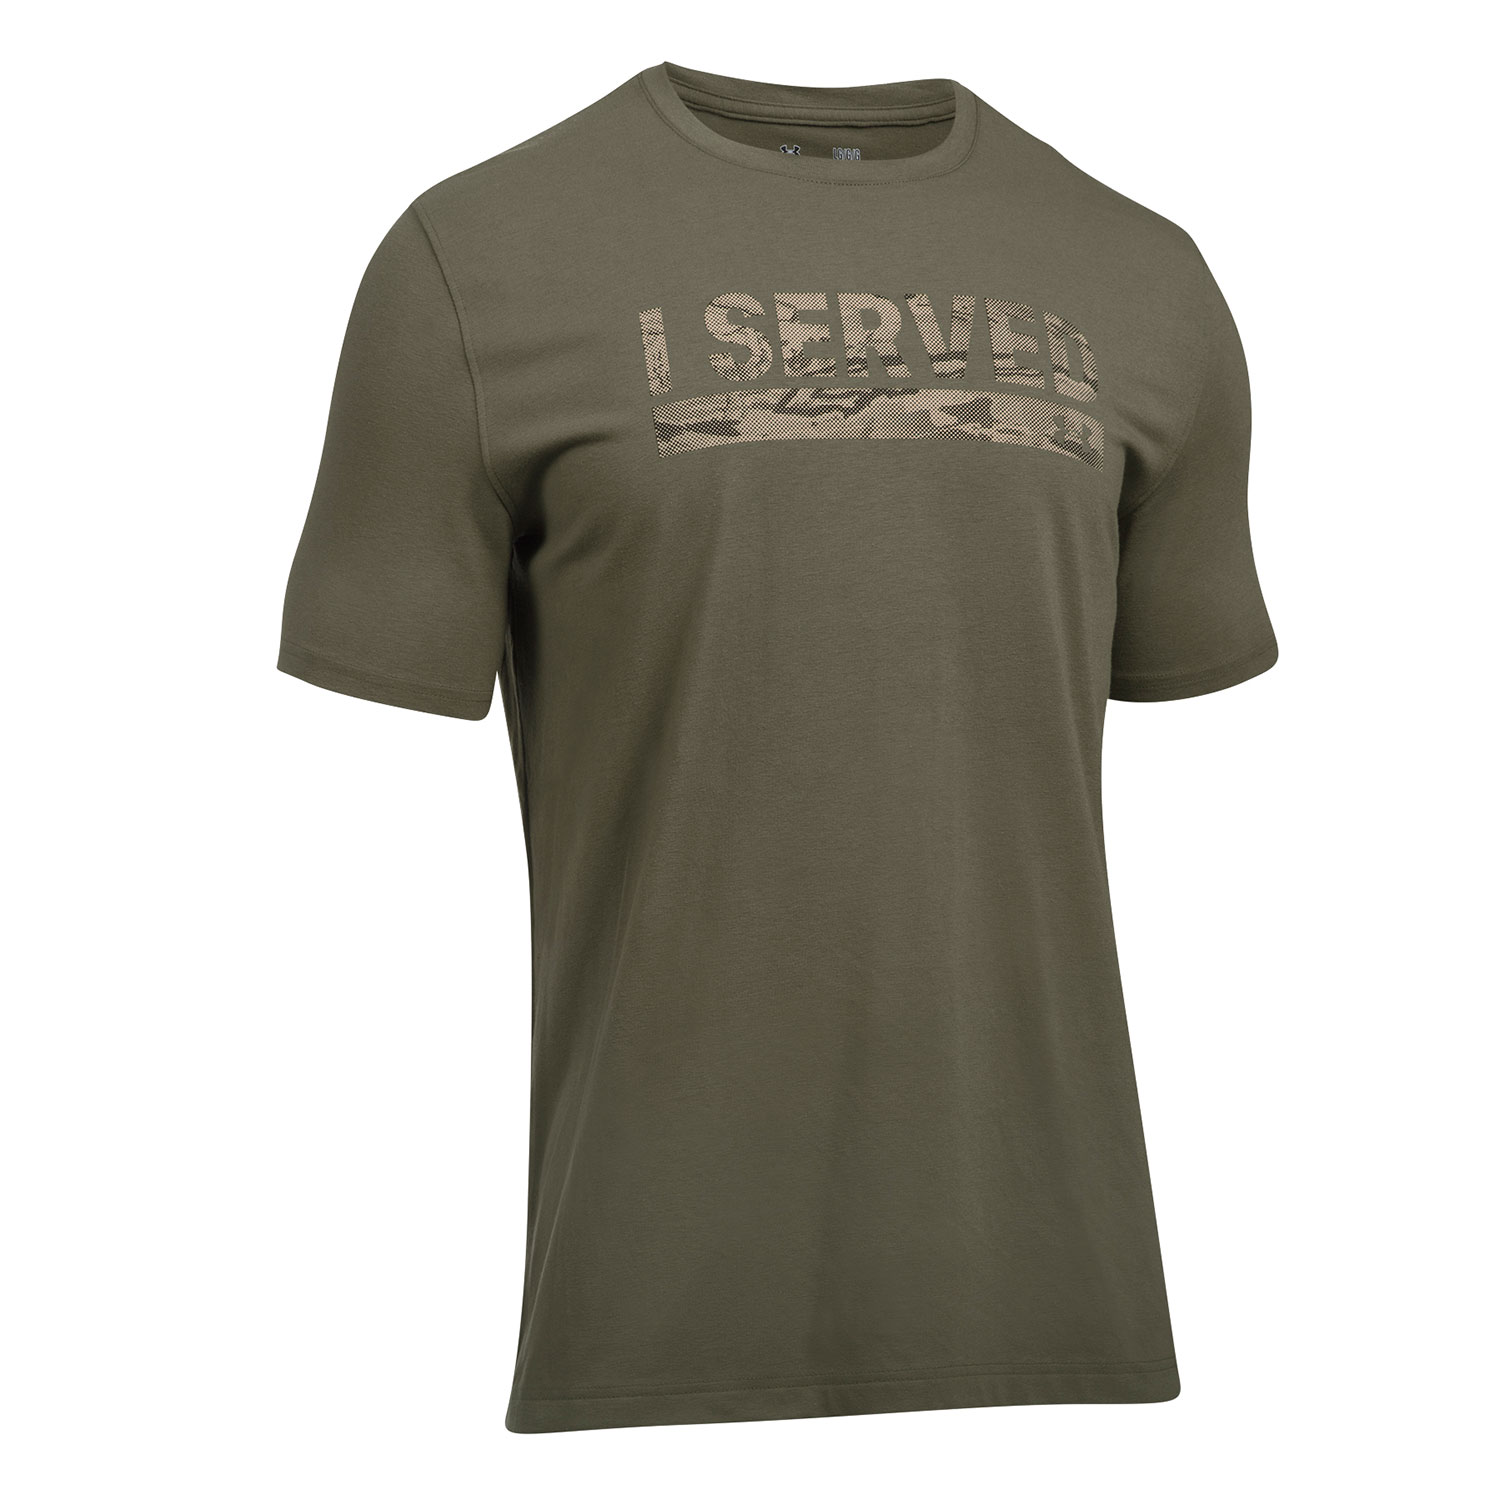 09c6d10250 Under Armour Freedom I Served Graphic T-Shirt.